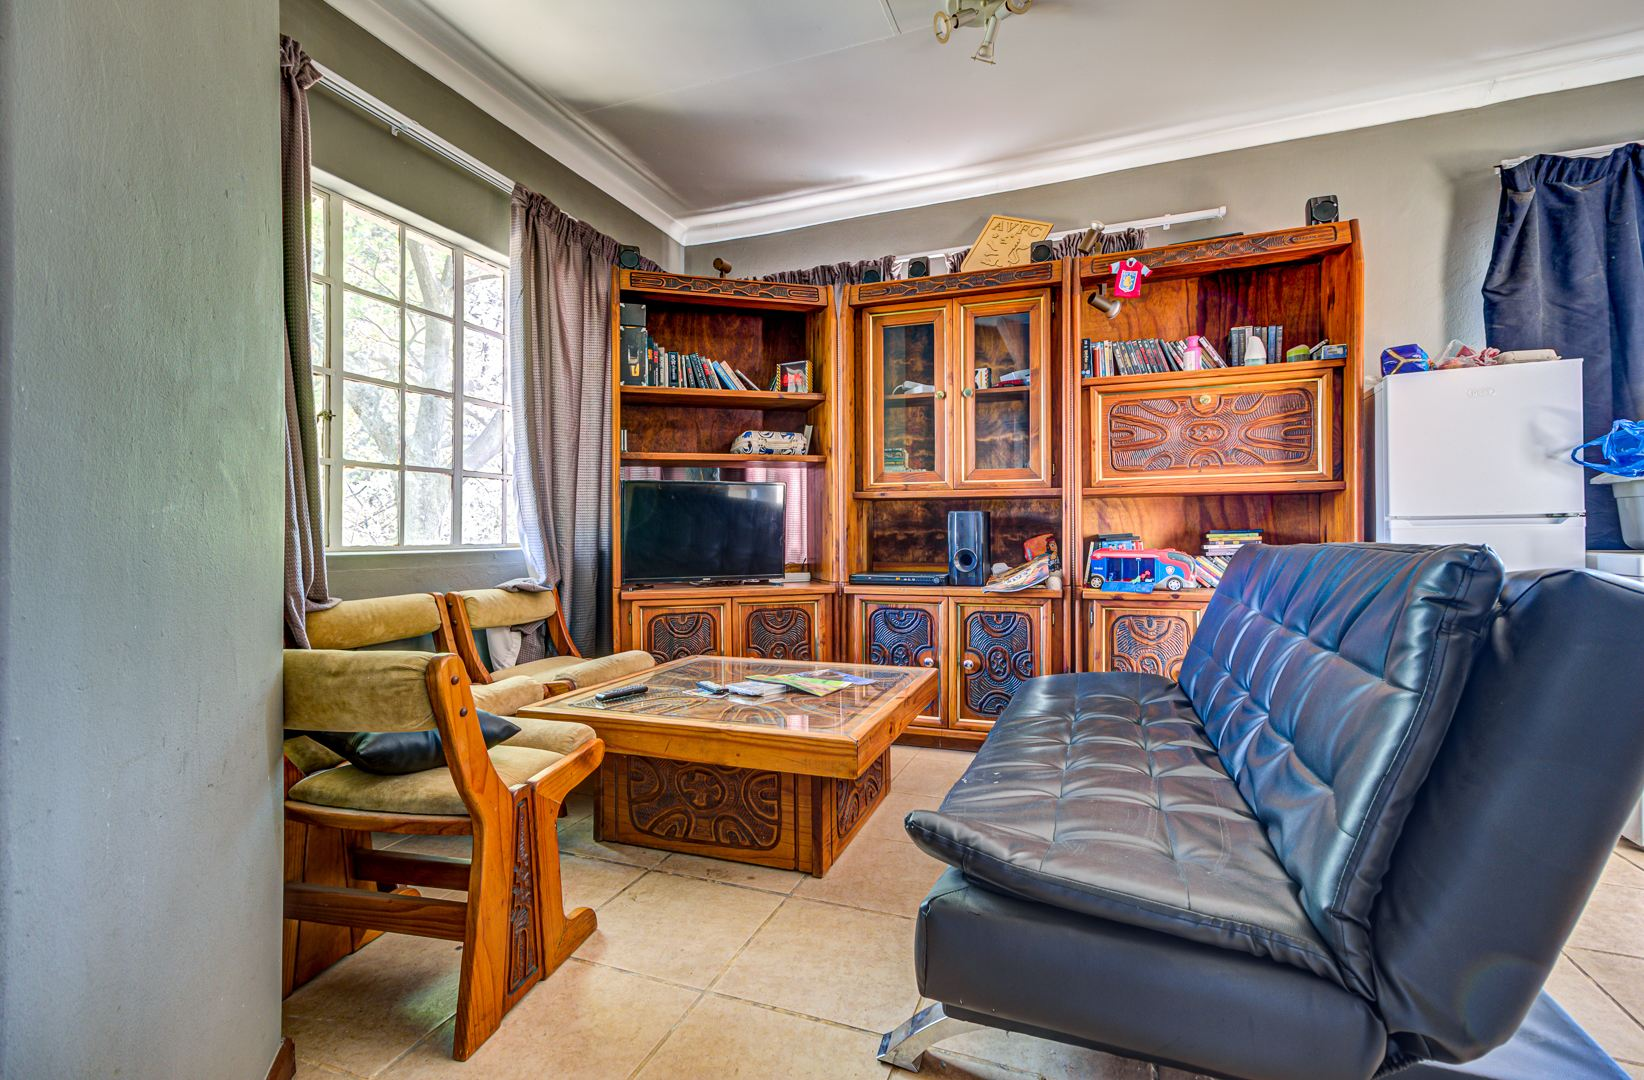 4 Bedroom House For Sale in Farrarmere